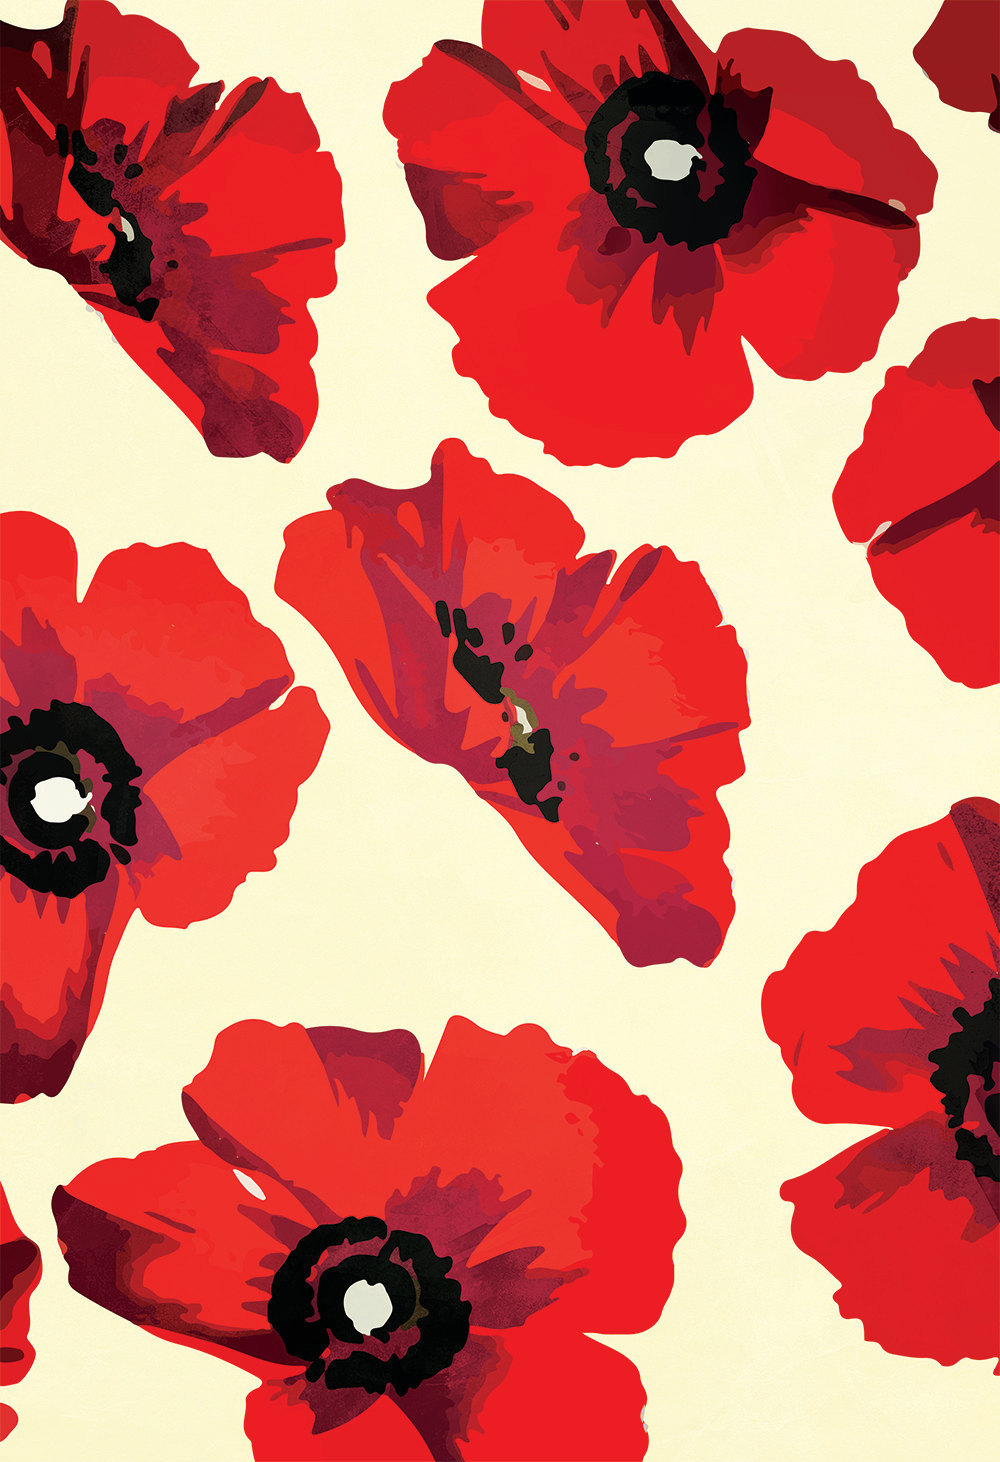 Poppy Art Print Large Red Poppies Flower Pattern Large Giclee Home